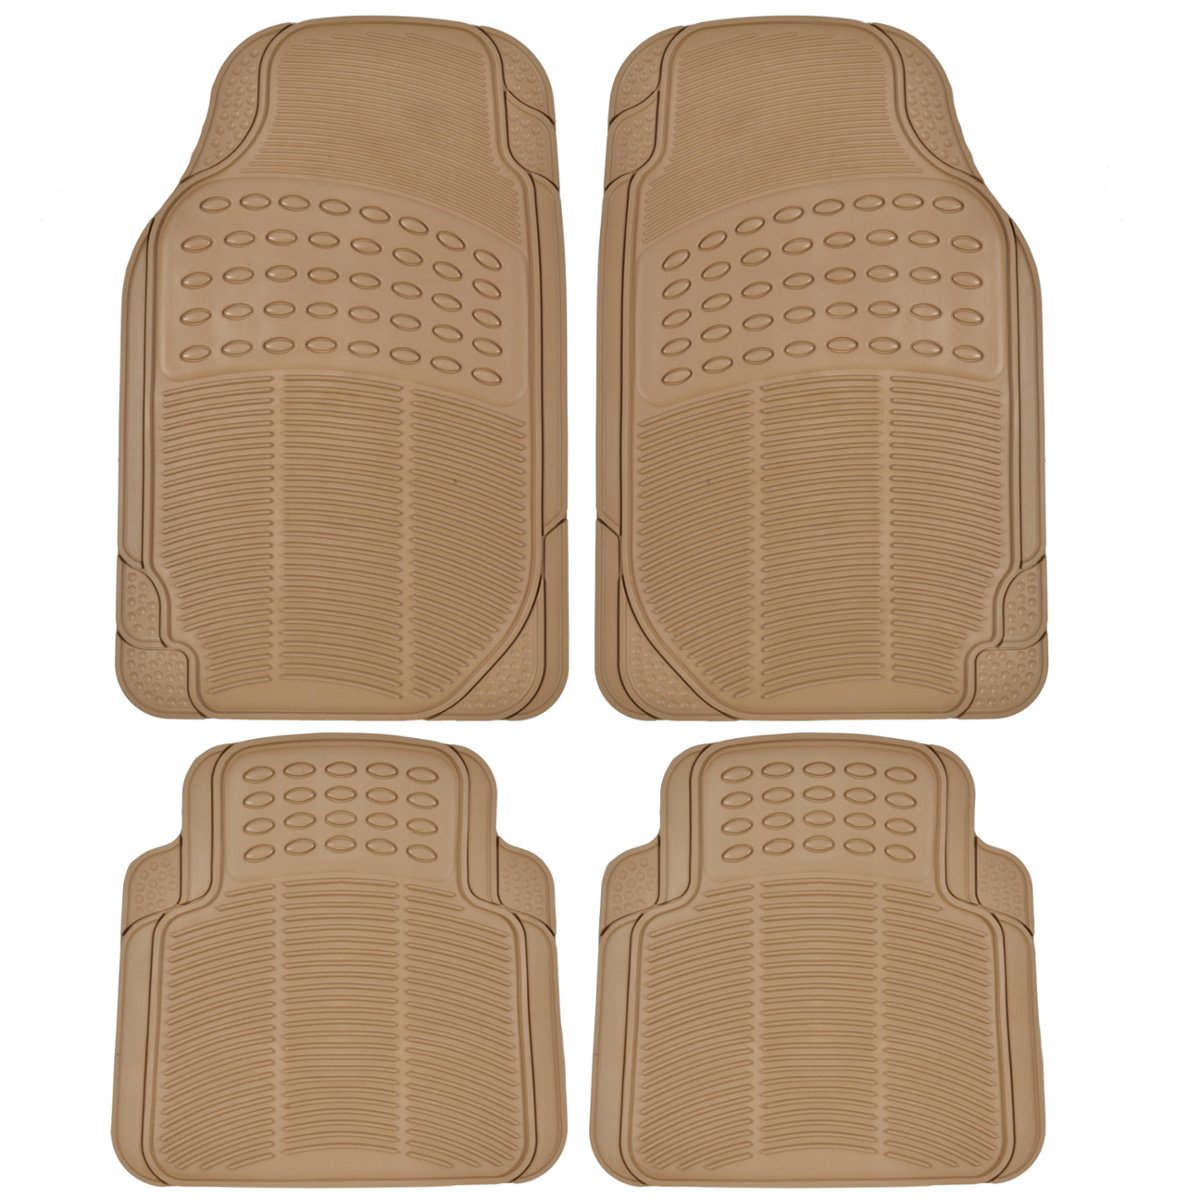 Best Floor Mats Reviews BDK Universal Fit 4-Piece Heavy Duty All Weather Protection Floor Mat - Rubber